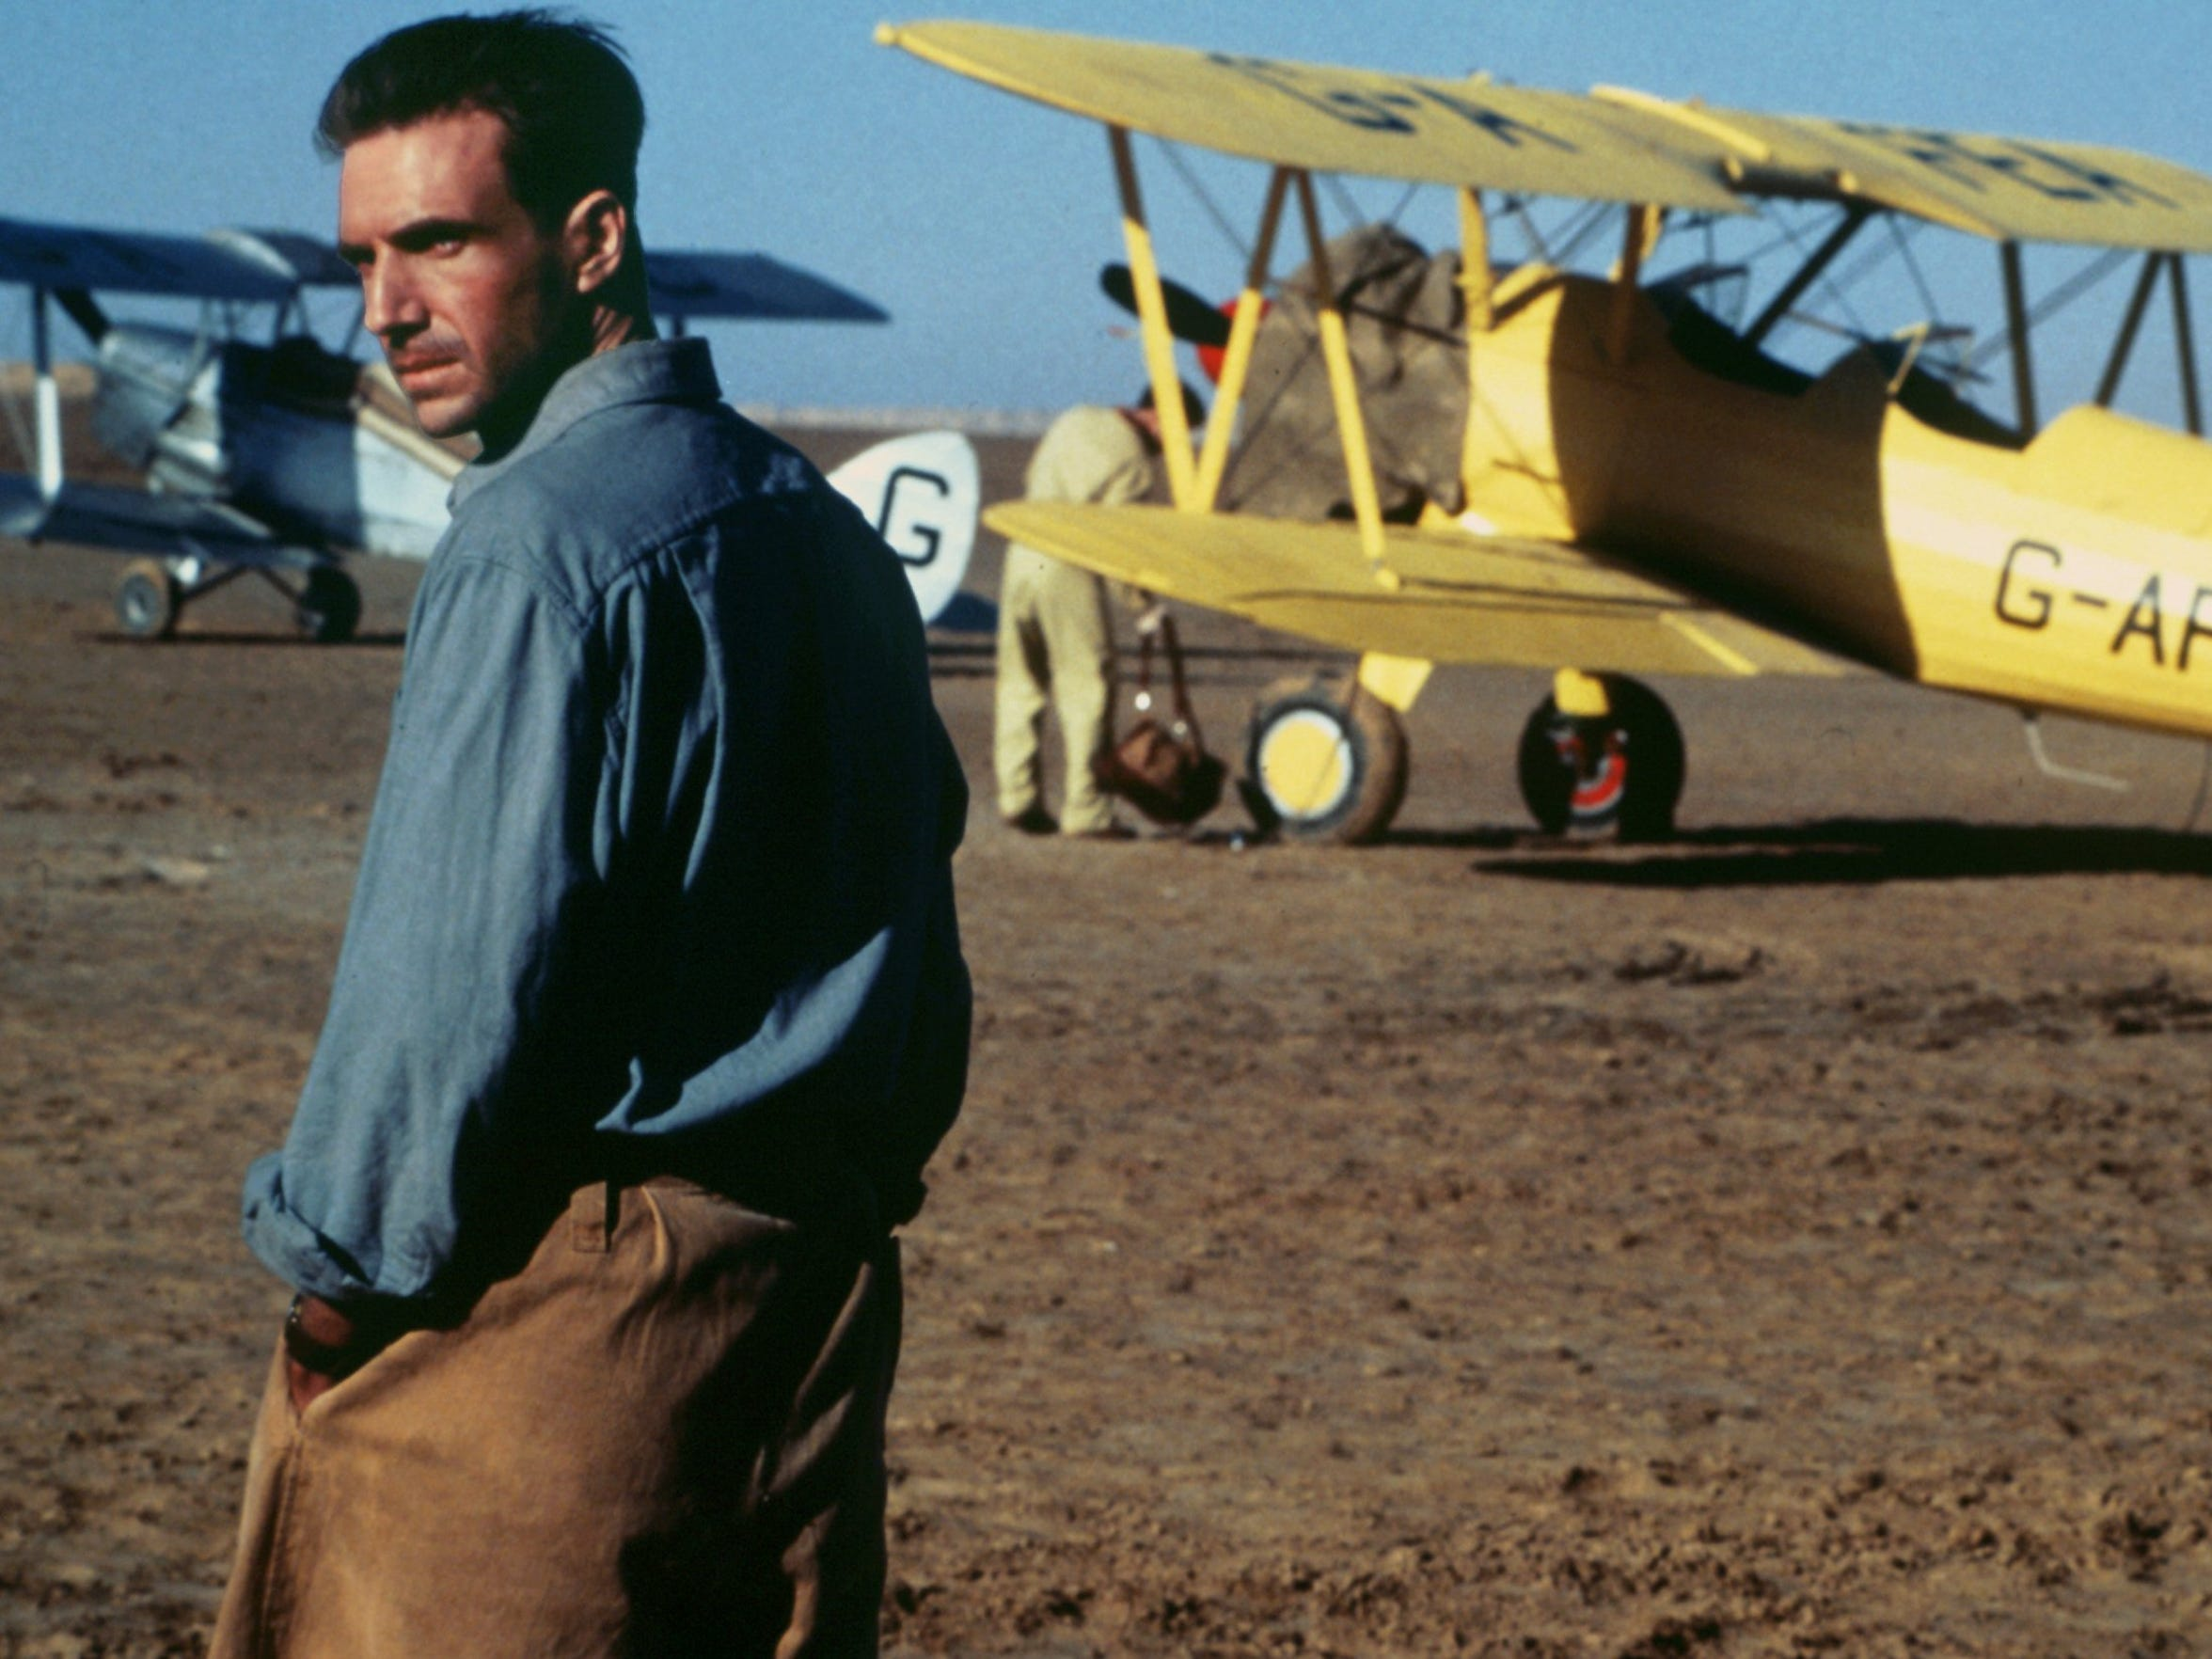 1997: 'The English Patient,' based on the novel by